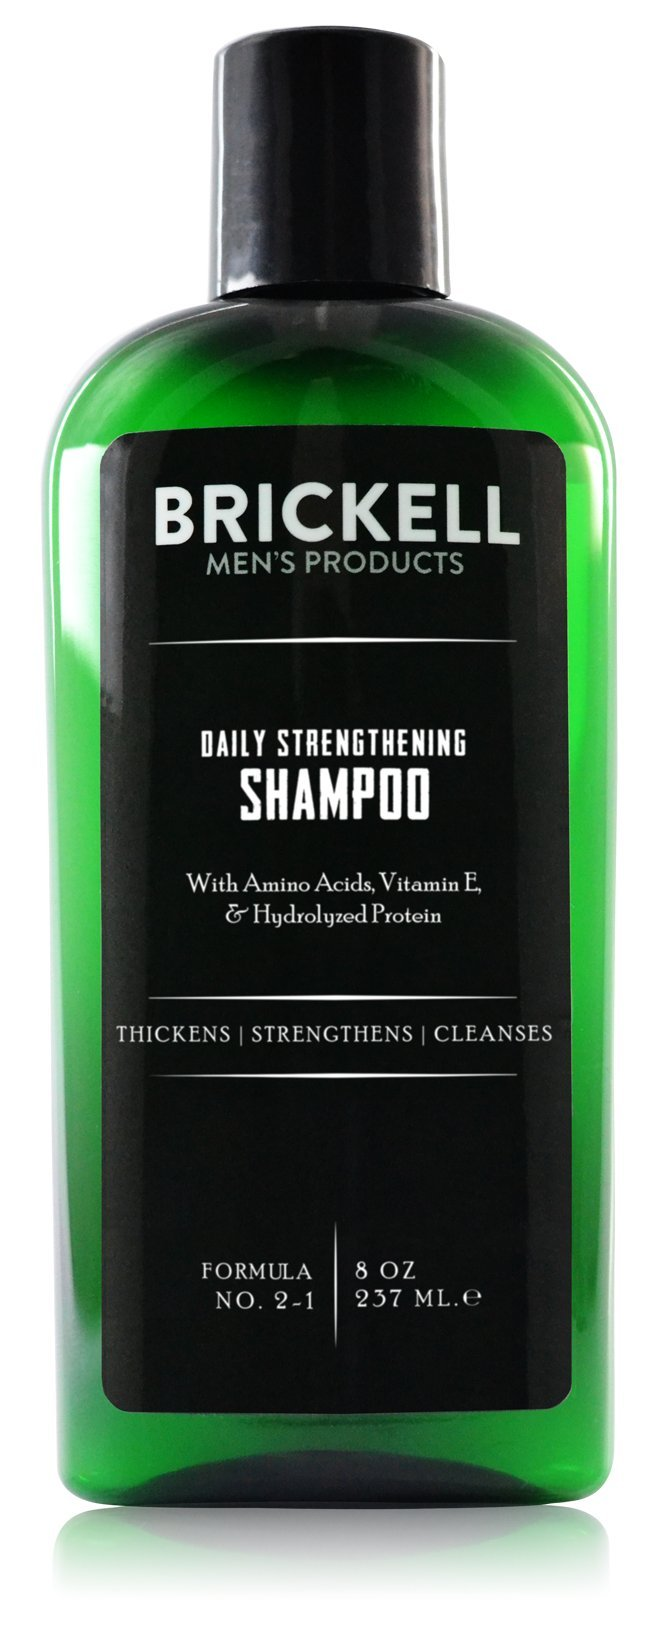 Brickell Men's Products Daily Strengthening Shampoo for Men, Natural and Organic Featuring Mint and Tea Tree Oil To Soothe Dry and Itchy Scalp, Sulfate Free and Paraben Free, 8 Ounce, Scented by Brickell Men's Products